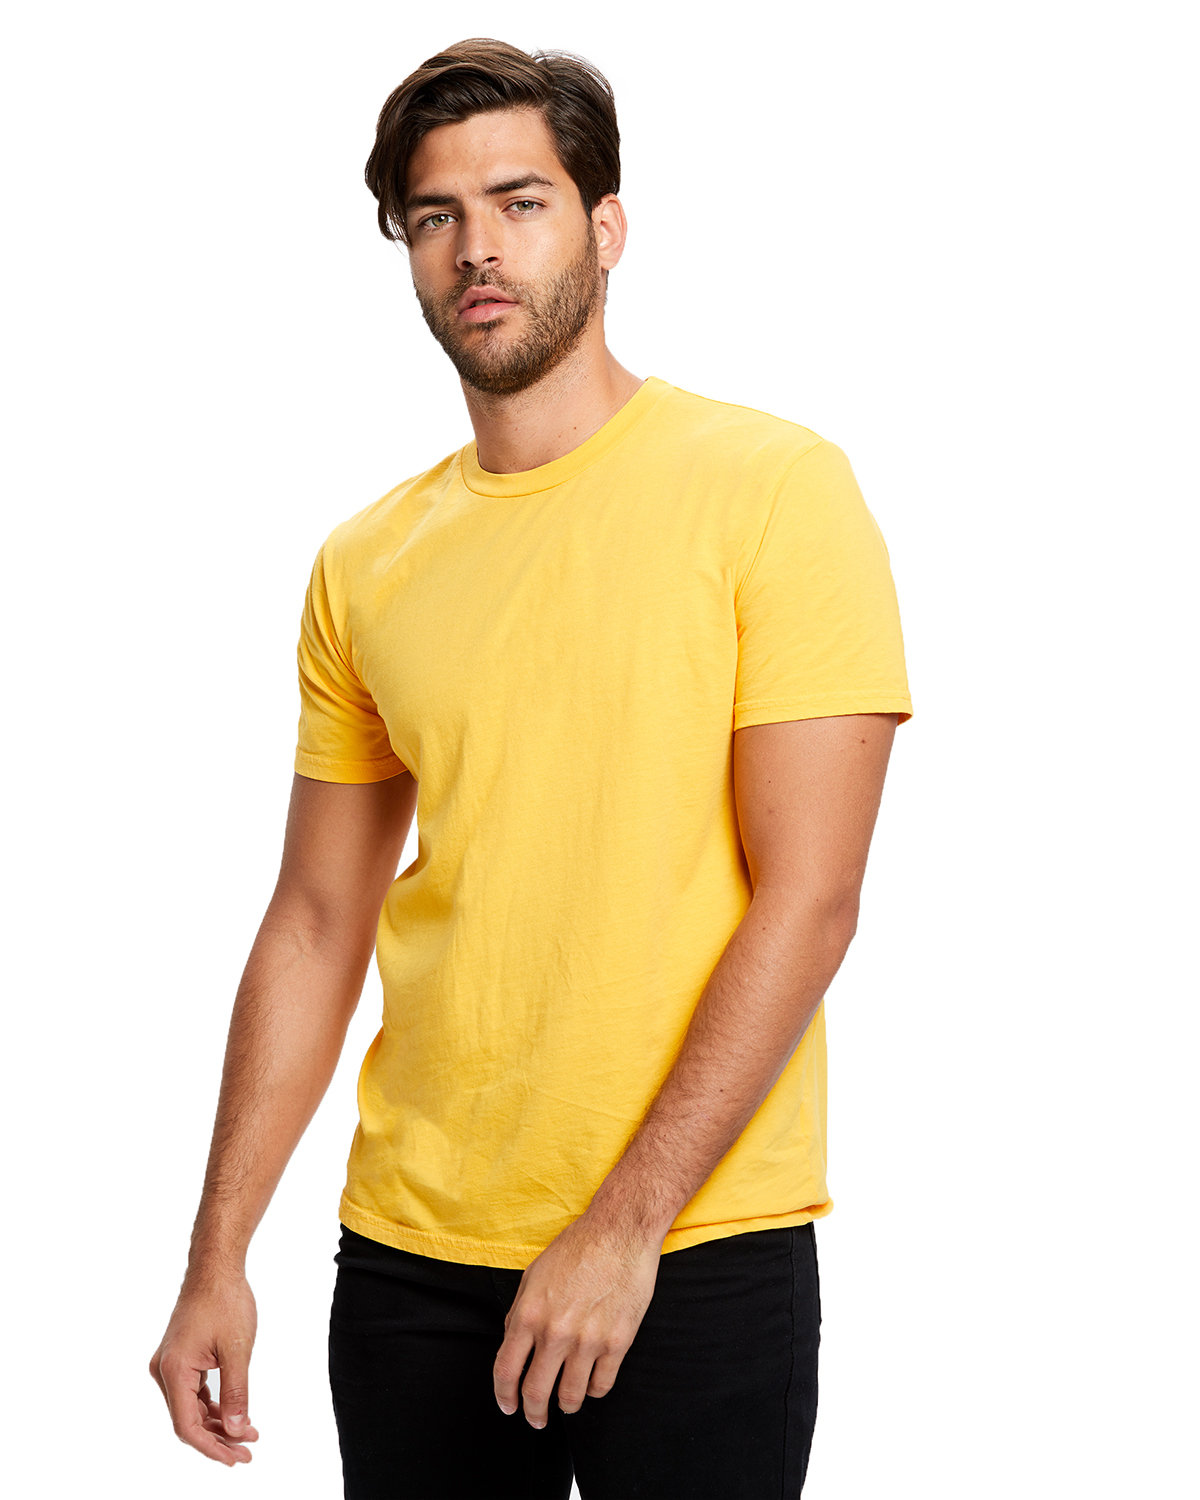 US Blanks Men's Made in USA Short Sleeve Crew T-Shirt GOLD